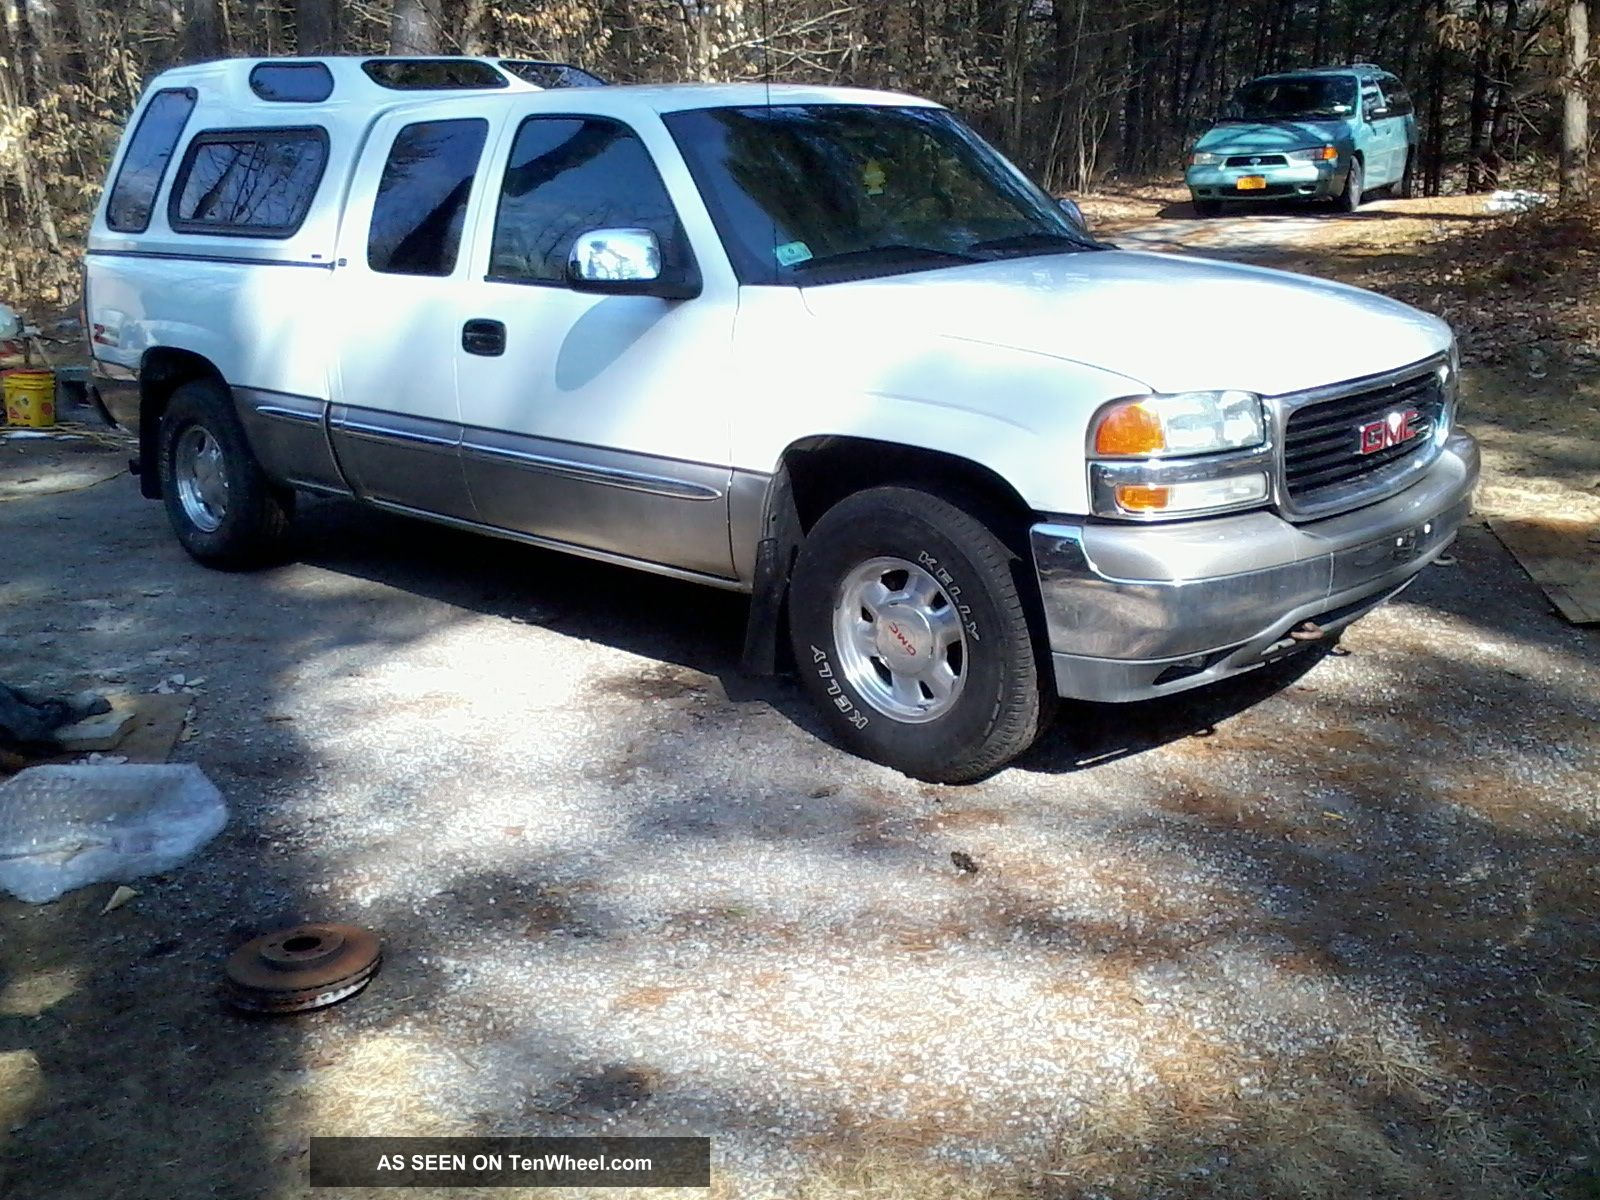 2000 Gmc Sierra Extended Cab 4x4 Z71 Sierra 1500 photo